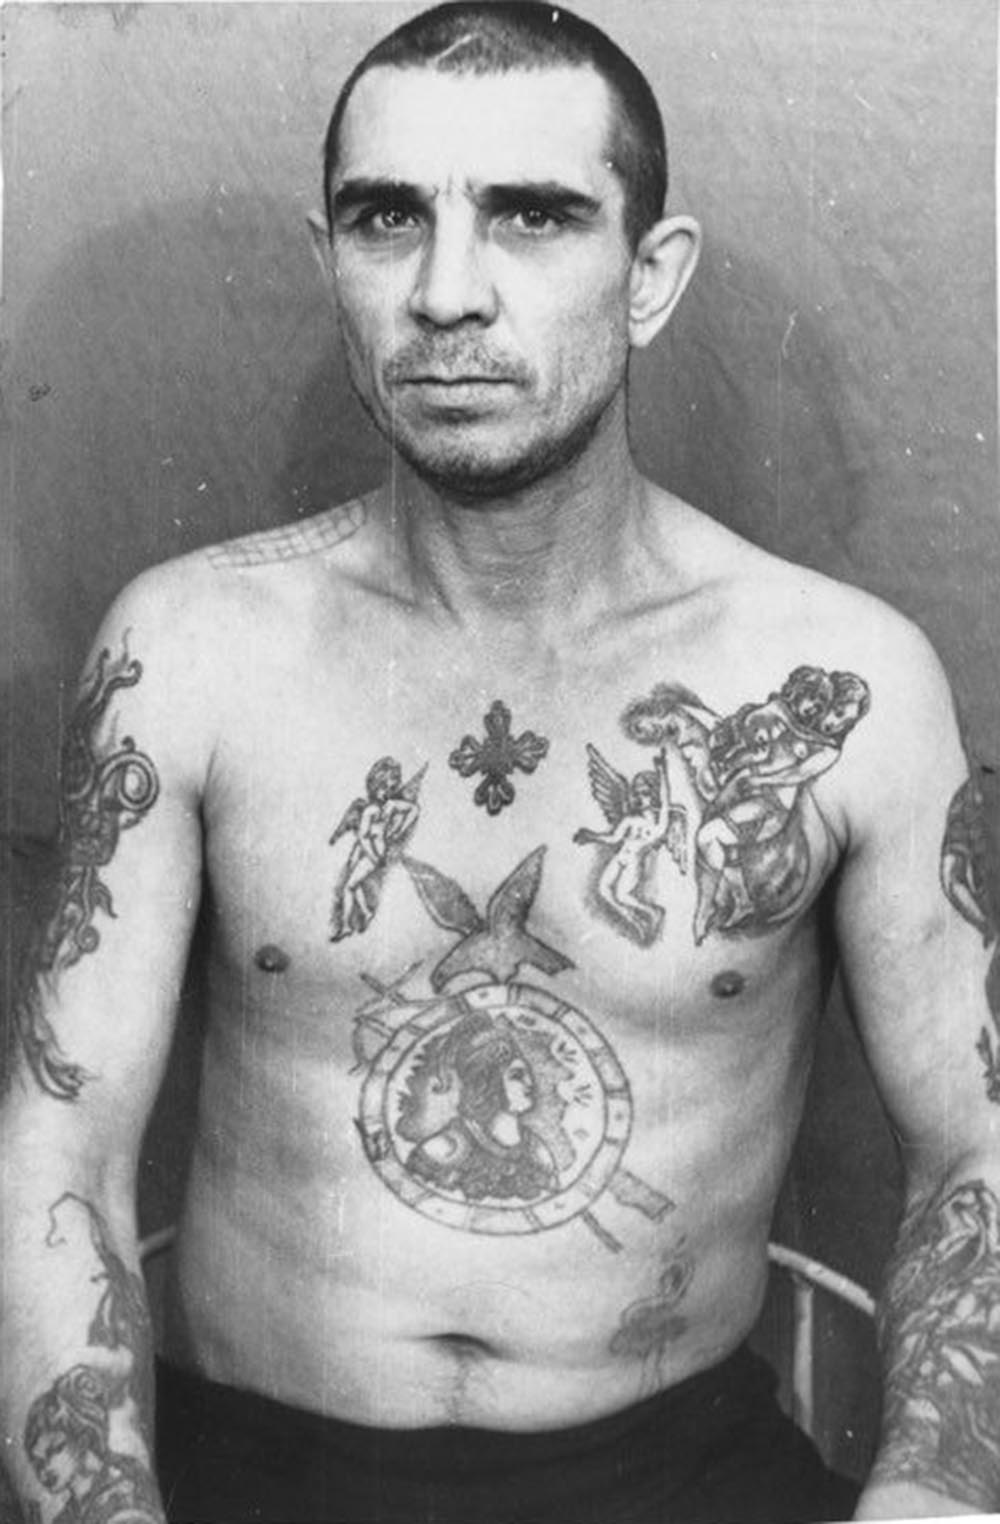 The tattoos on this inmate mimic those of higher ranking criminals. They indicate the bearer has adopted a thief's mentality. However, he does not wear the 'thief's stars;' he is not a 'vor v zakone' or 'thief-in-law,' and therefore holds no real power among this caste.